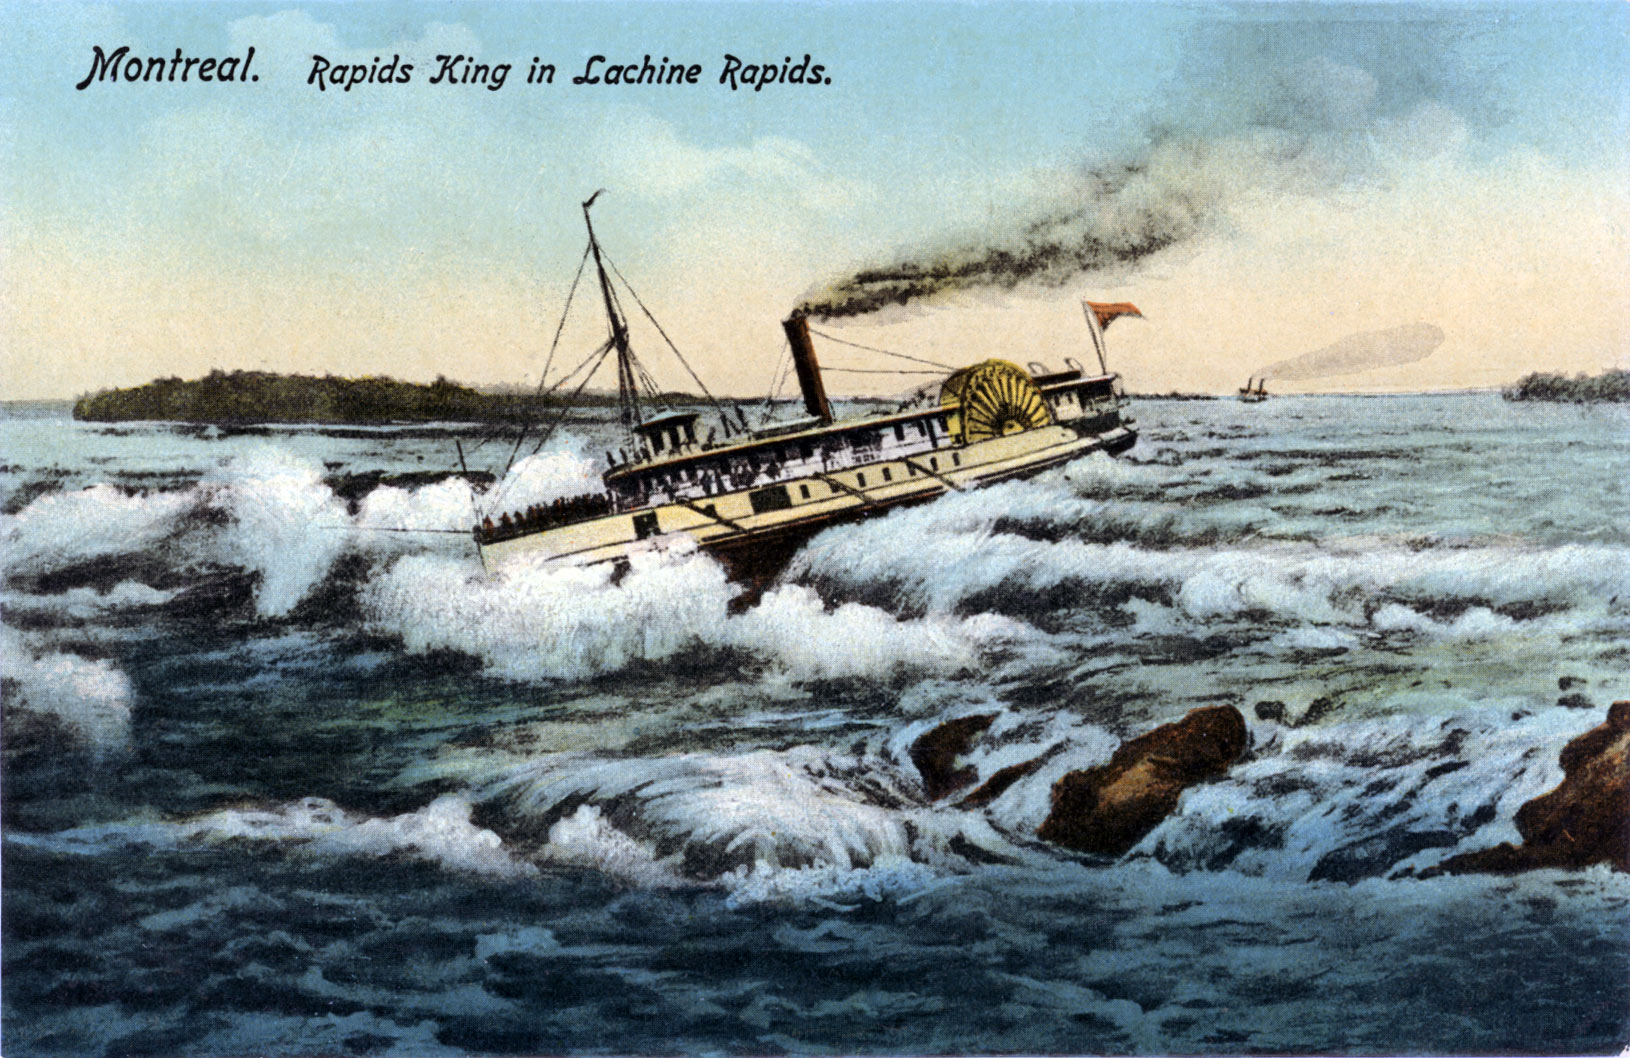 Montreal. RAPIDS KING in Lachine Rapids